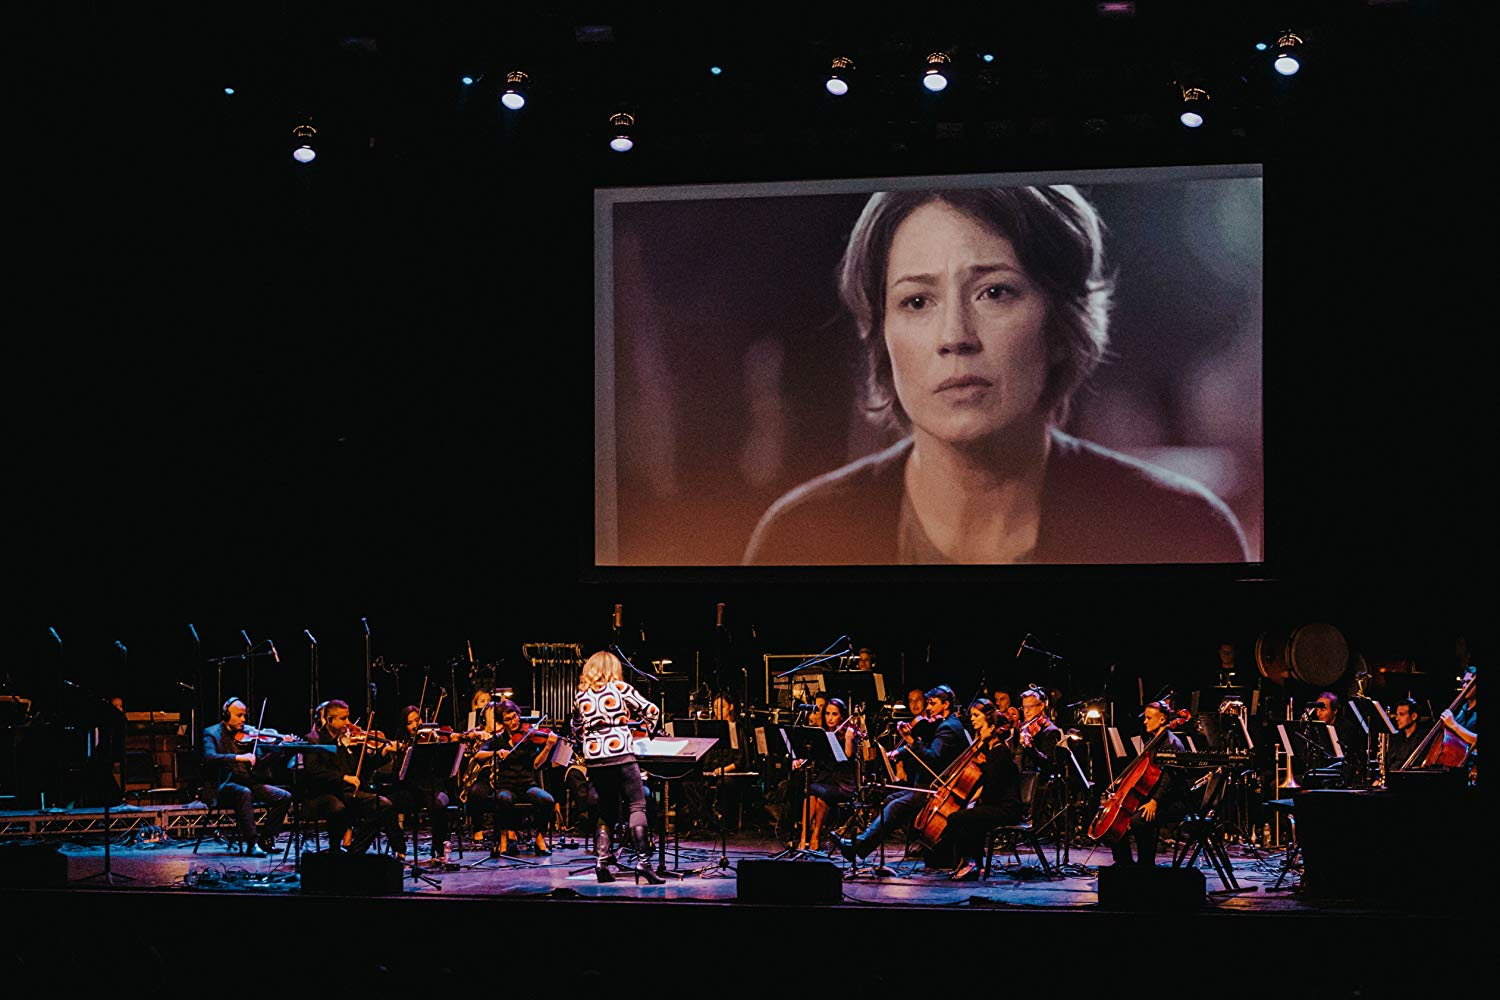 Ronit Kirchman conducting a live suite of music from The Sinner with the Hollywood Chamber Orchestra at The Wiltern on September 4, 2018.